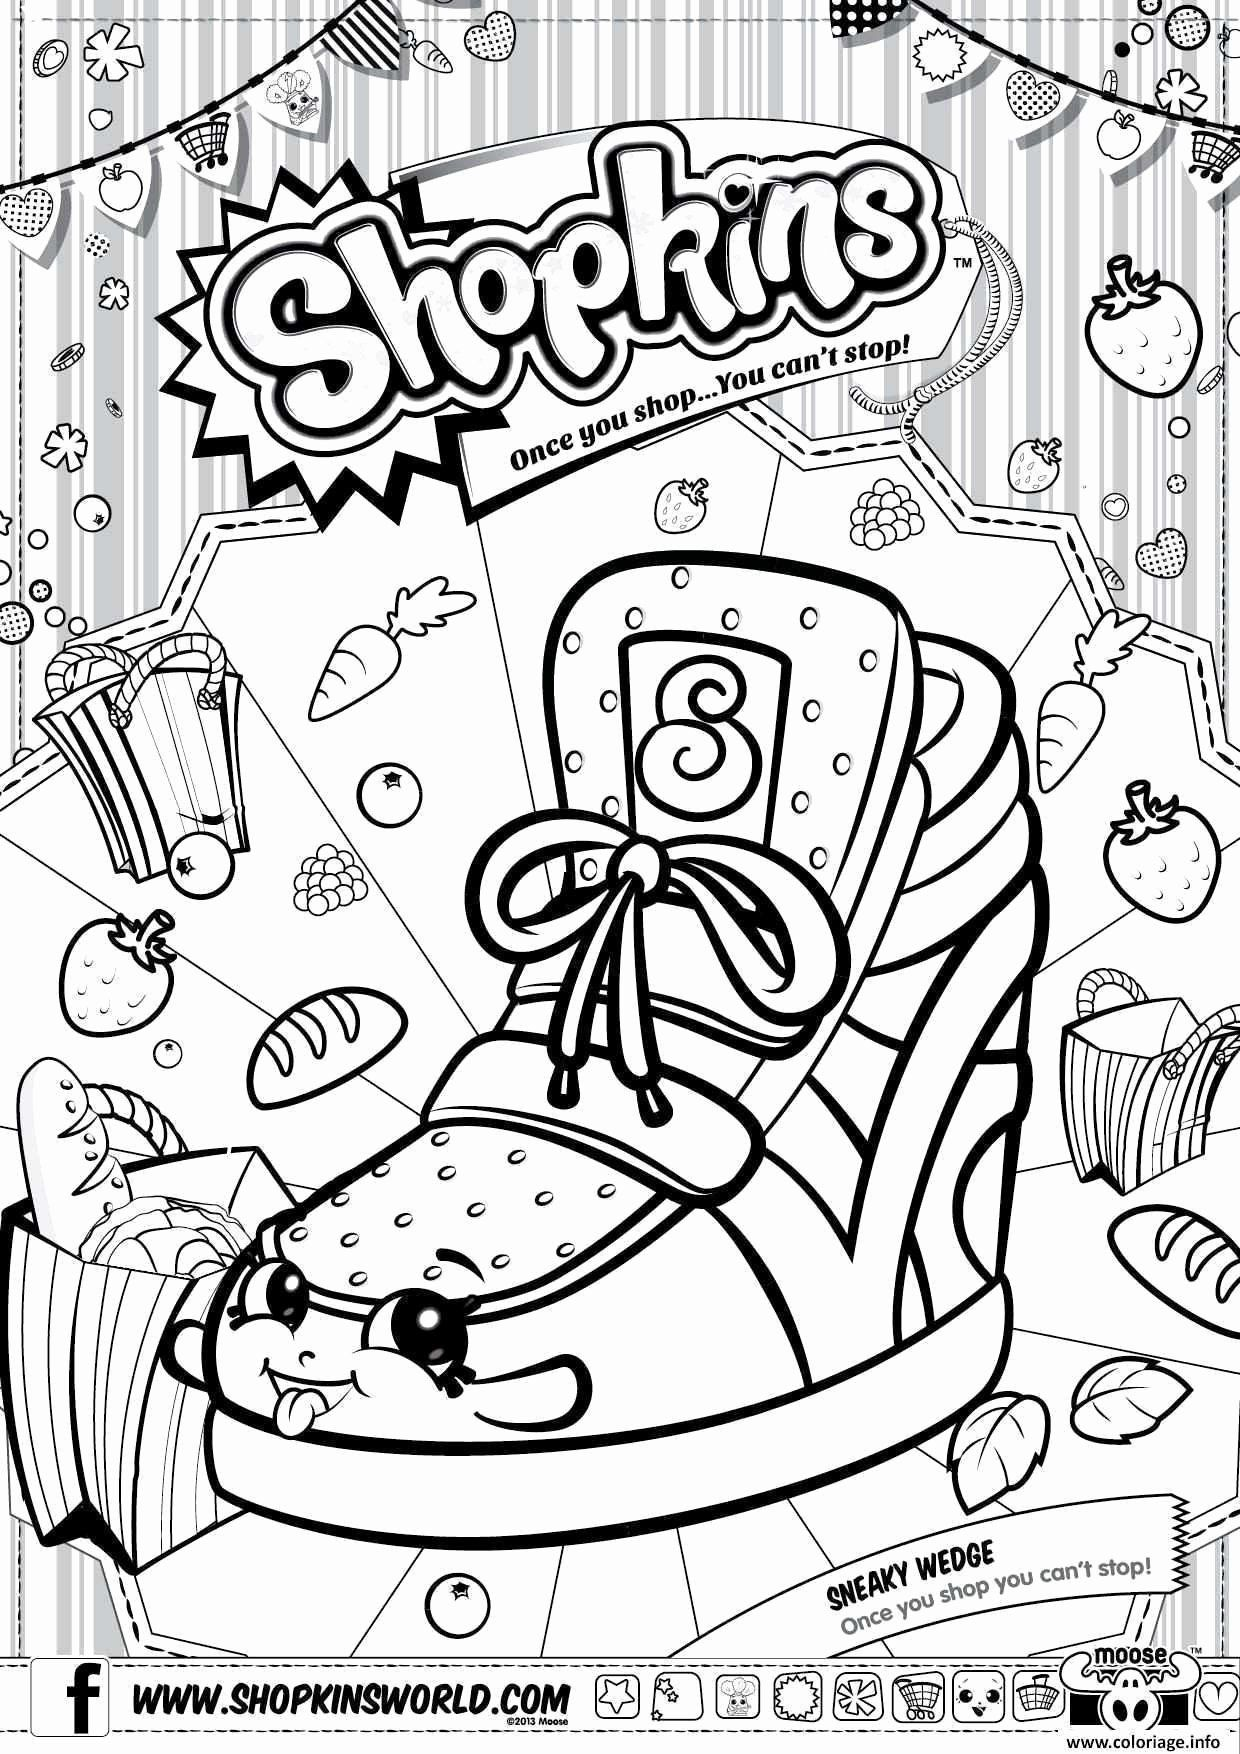 Free Fall Coloring Sheets Printable Best Of Free Download Image Awesome Print Shop 650 919 Print Shopkin Coloring Pages Shopkins Colouring Pages Coloring Pages